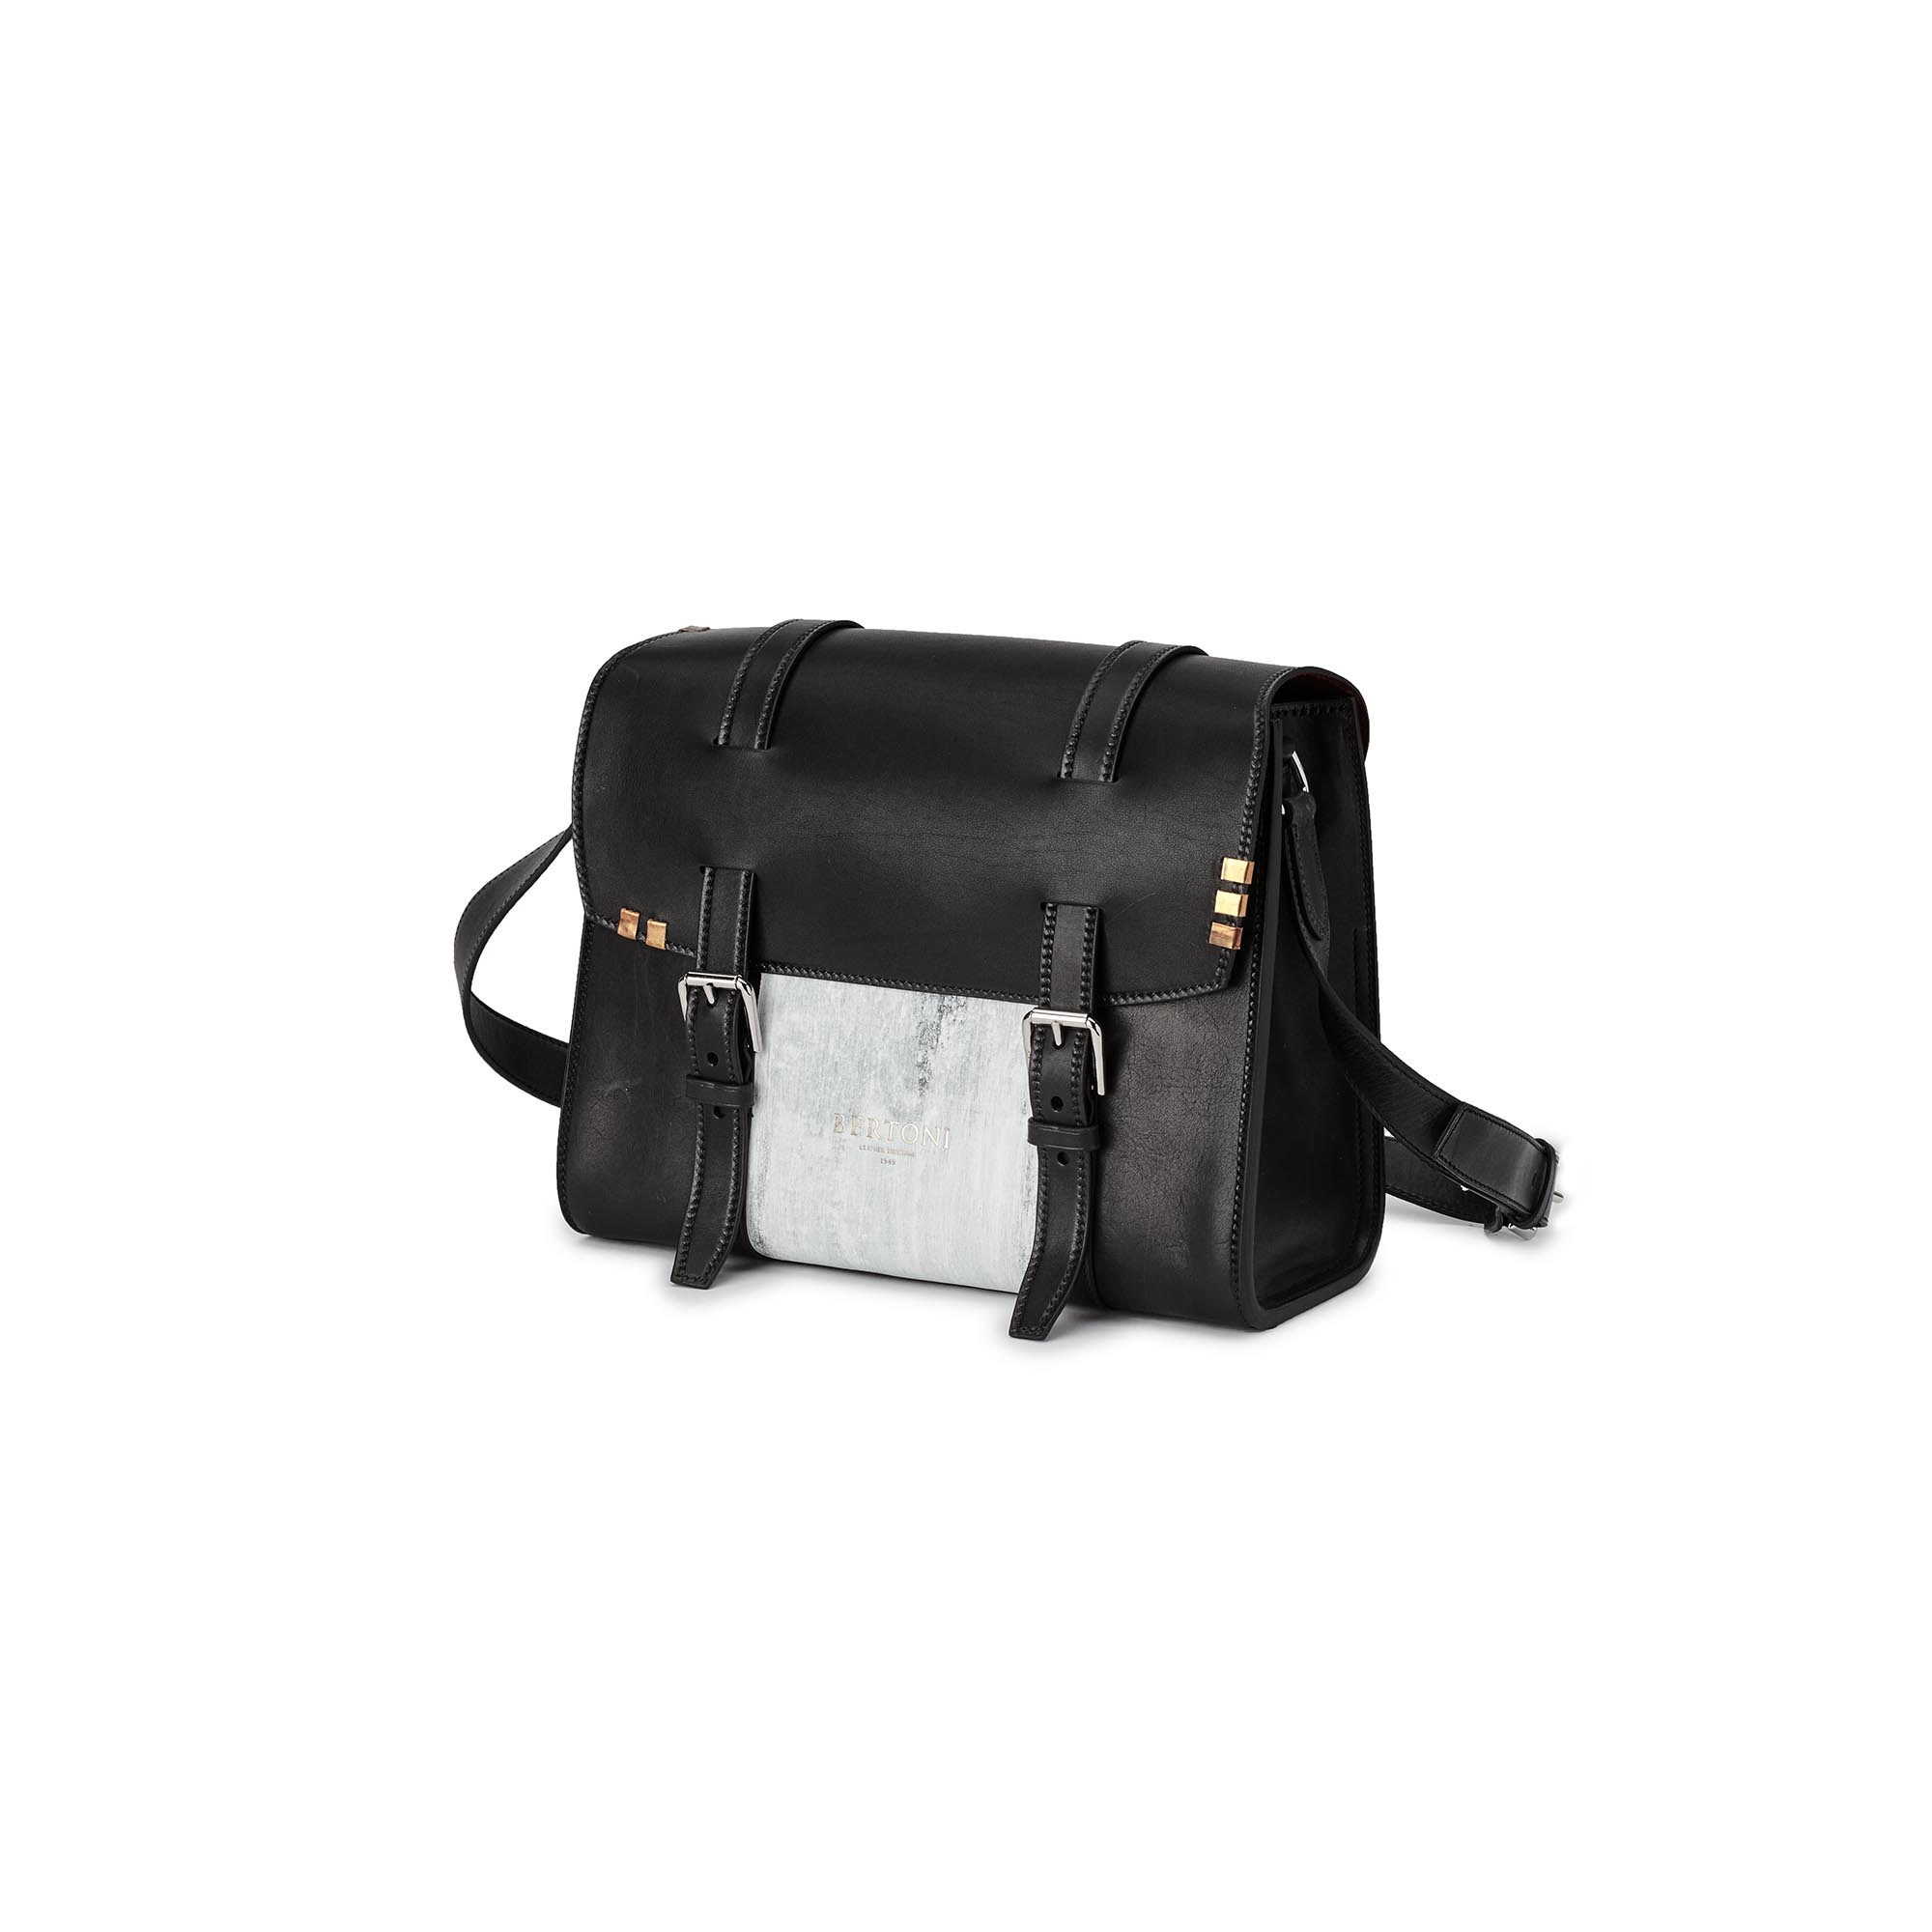 Signature-Messenger-black-rock-calf-bag-Bertoni-1949_01